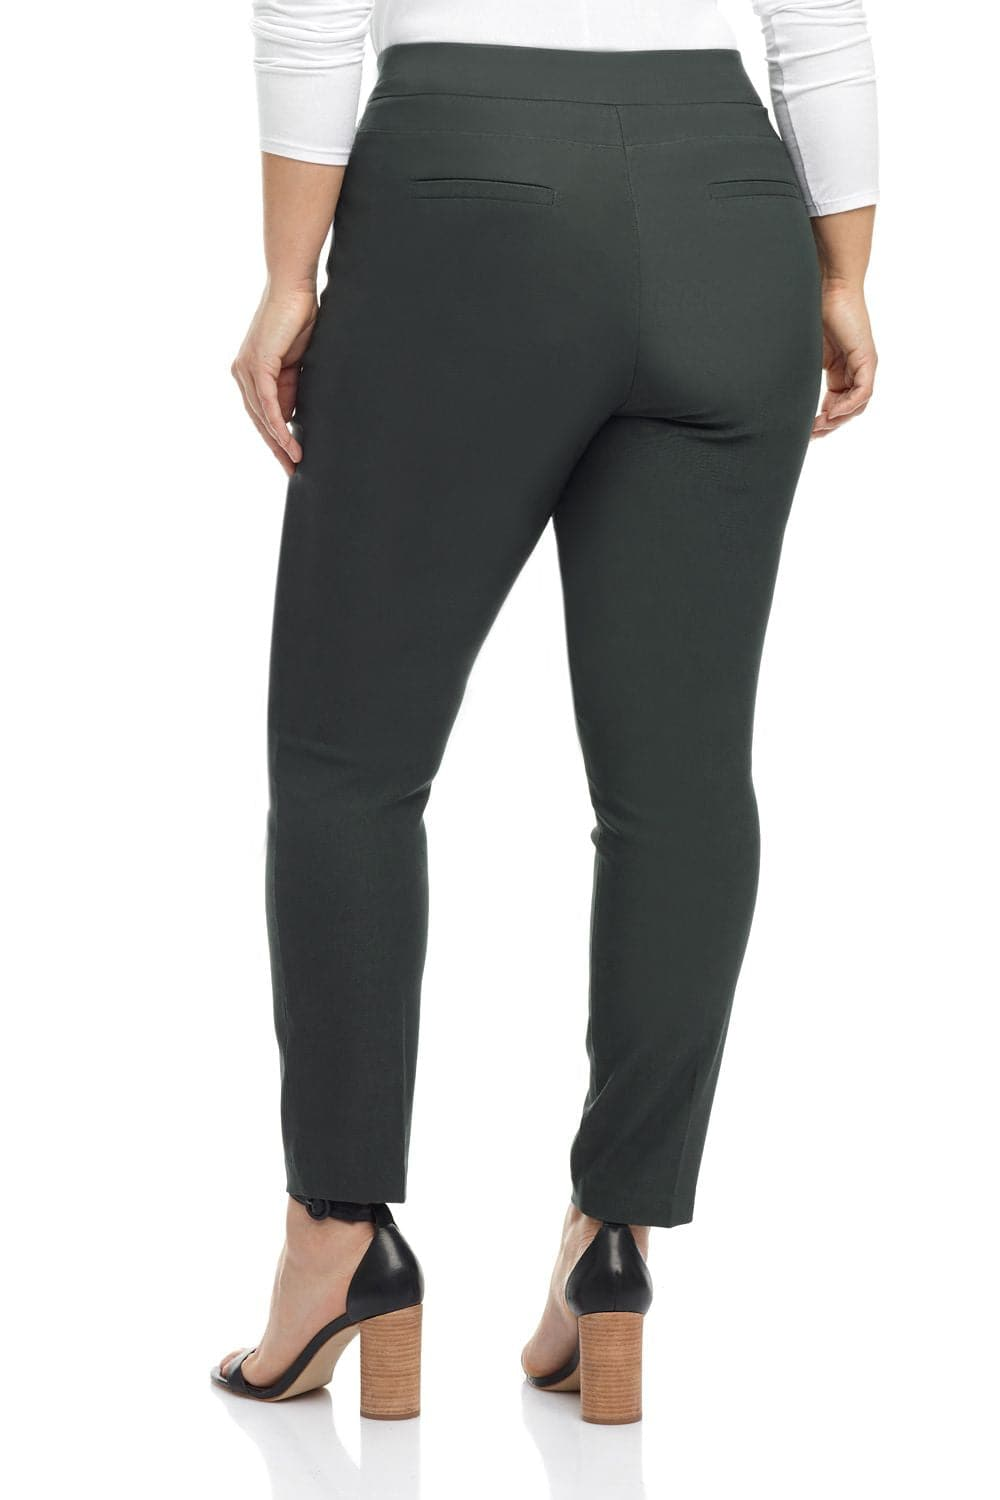 Curvy Woman Ease into Comfort Fit Modern Skinny Pant with Tummy Control